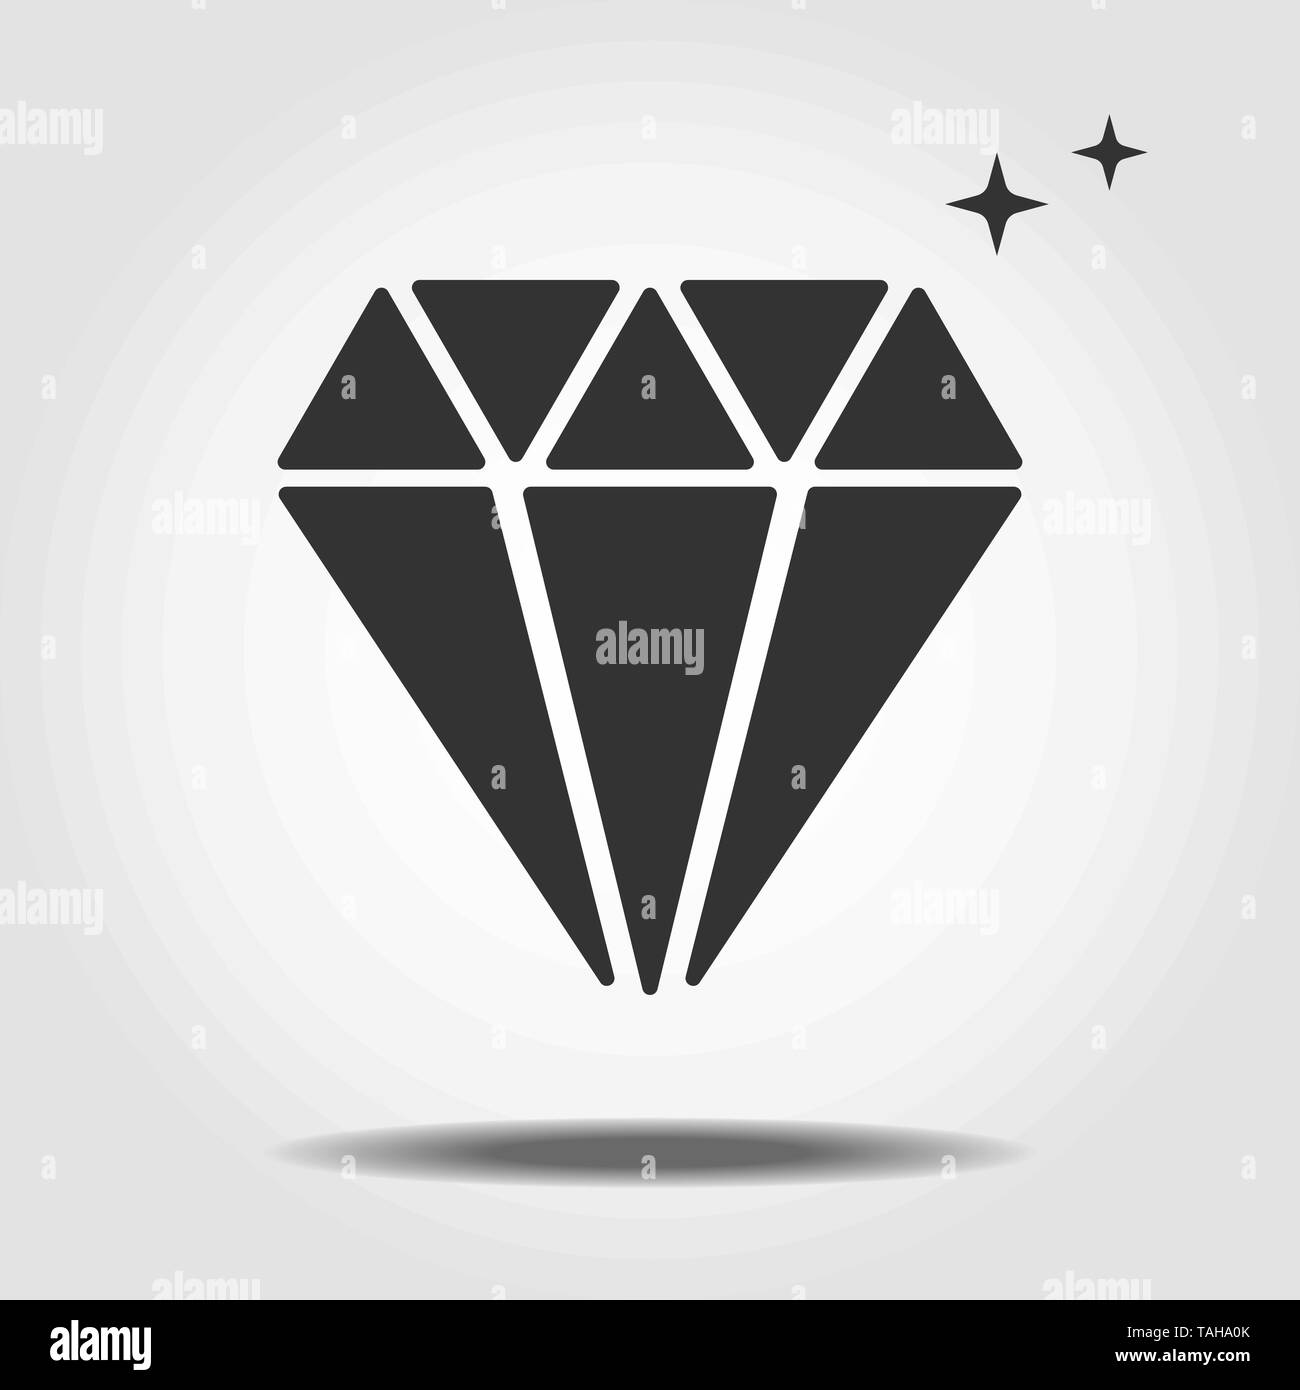 Isolated mineralogy icon symbol on clean background. Vector diamond element in trendy style eps10 - Stock Image